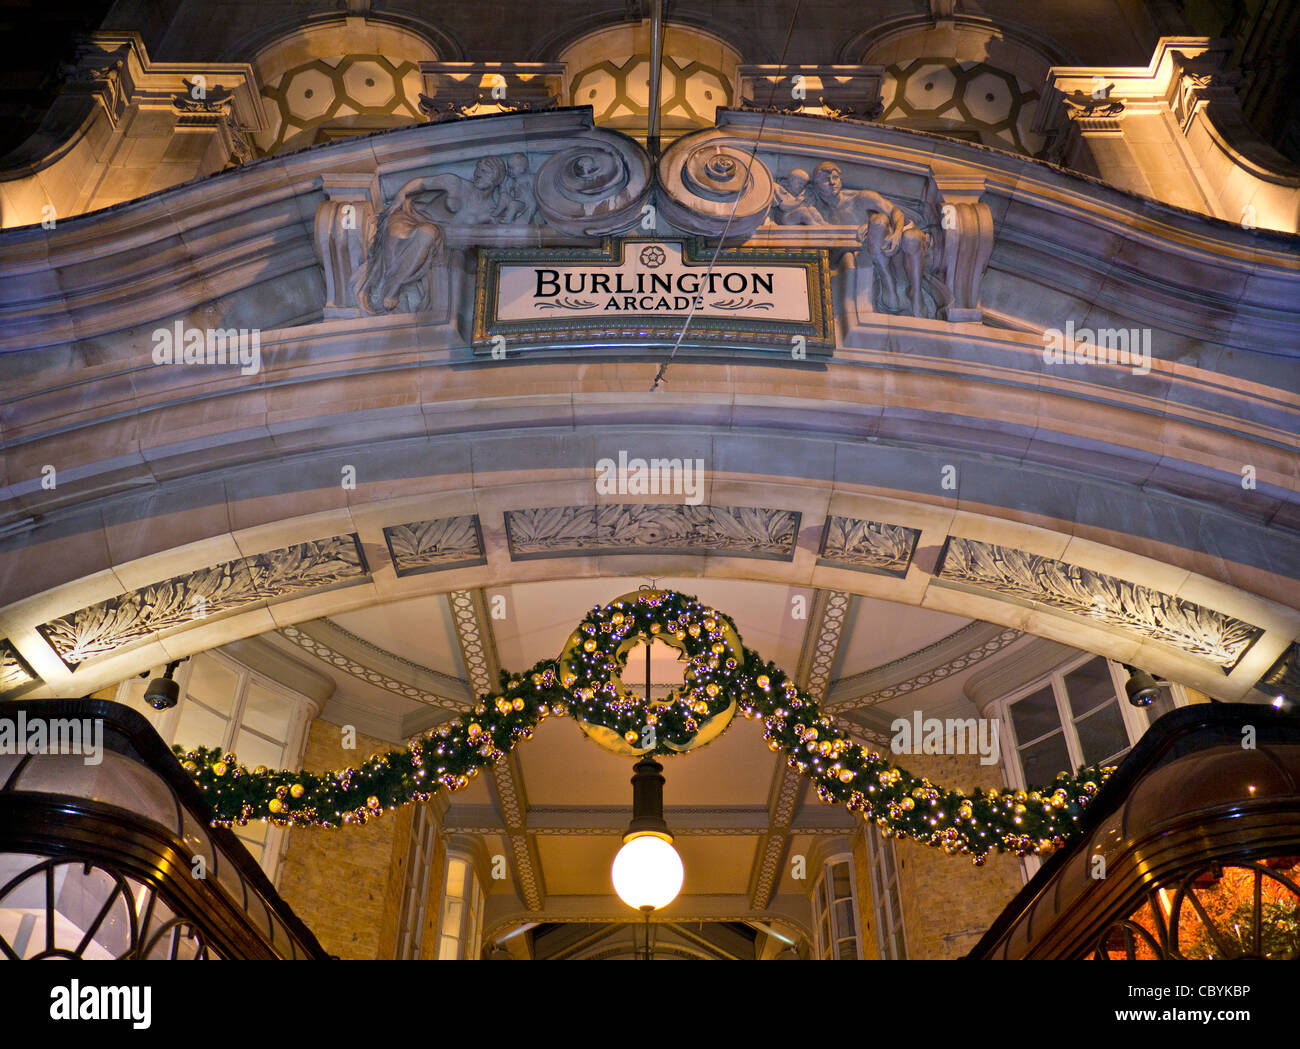 Burlington luxury shopping arcade entrance in Piccadilly with traditional Christmas lights and decorations at dusk - Stock Image